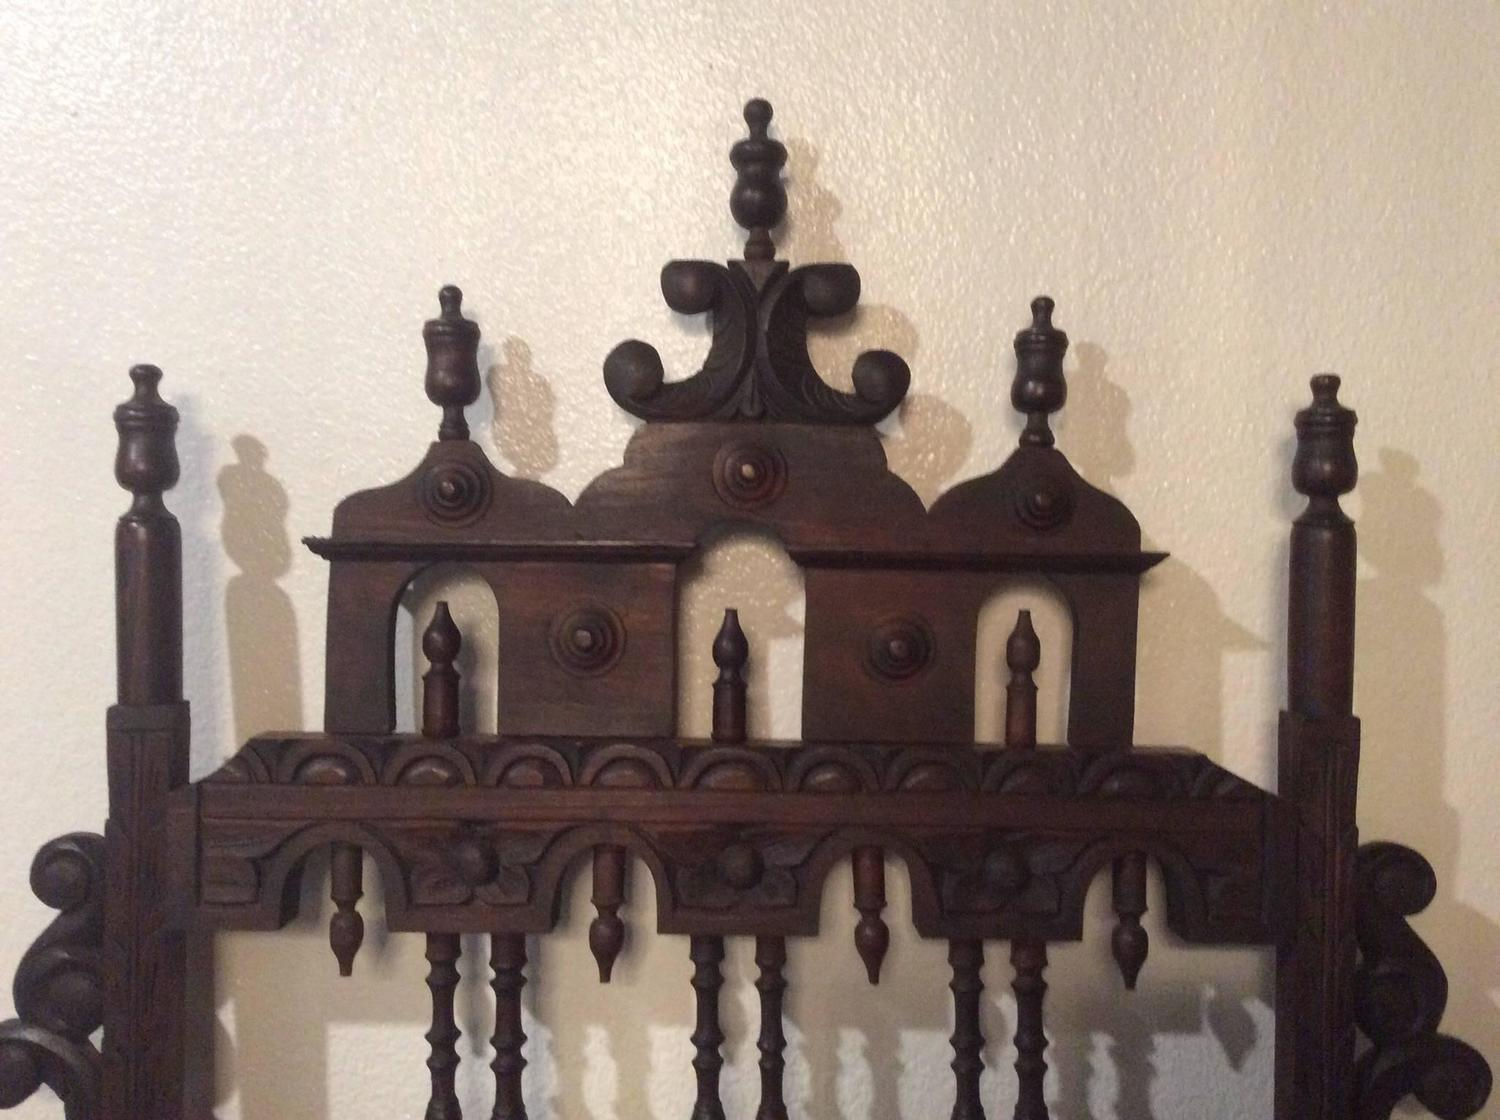 Antique Bed: Pagoda Headboard Vintage Full Queen Ornate Spanish Spindle